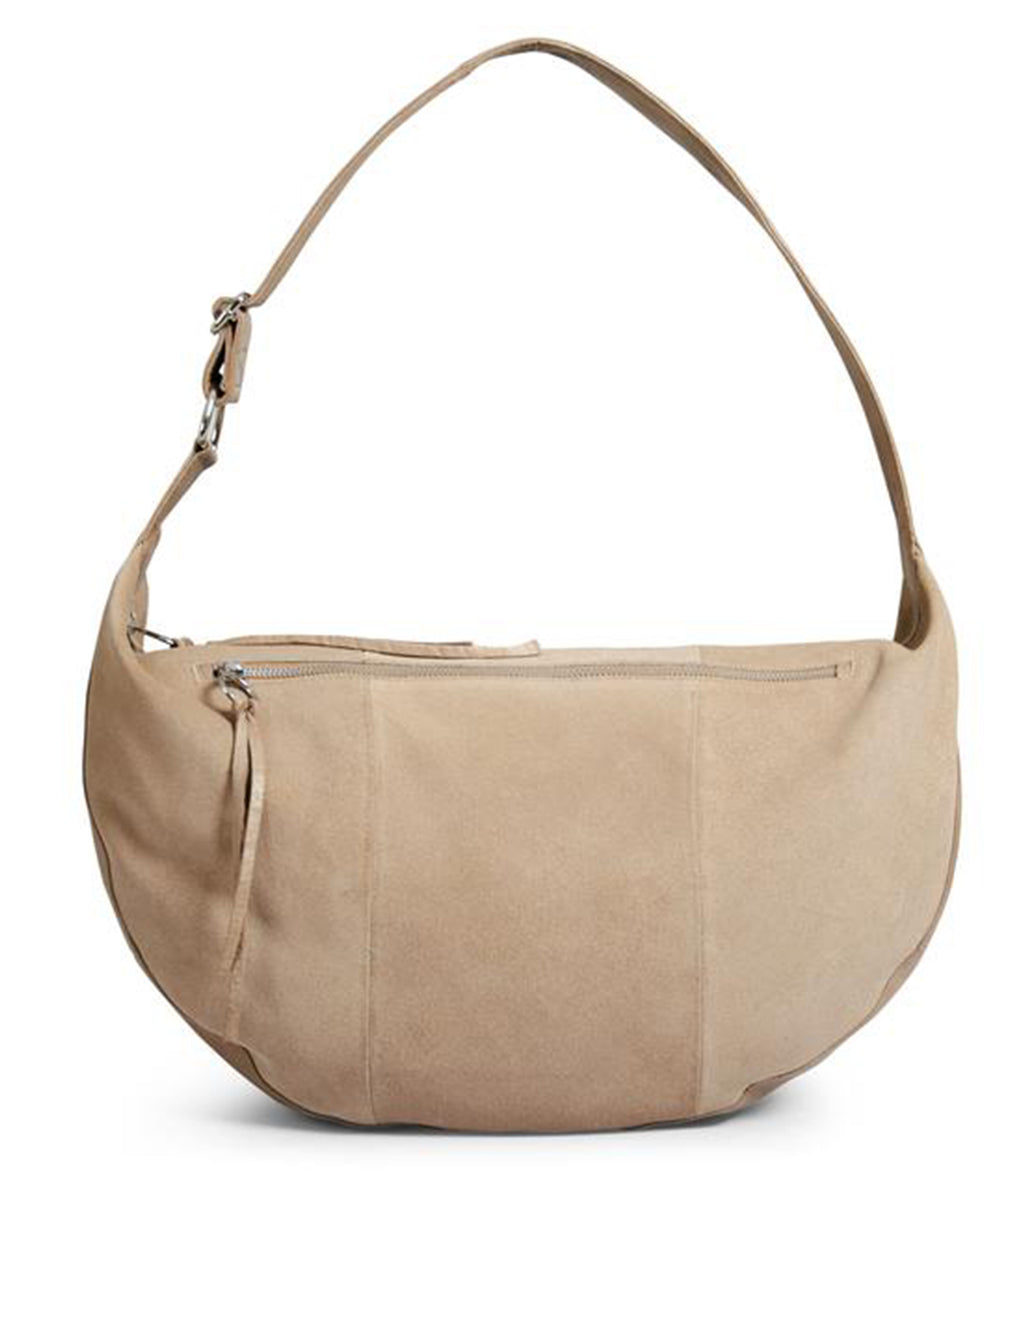 Kiana Hobo in Natural